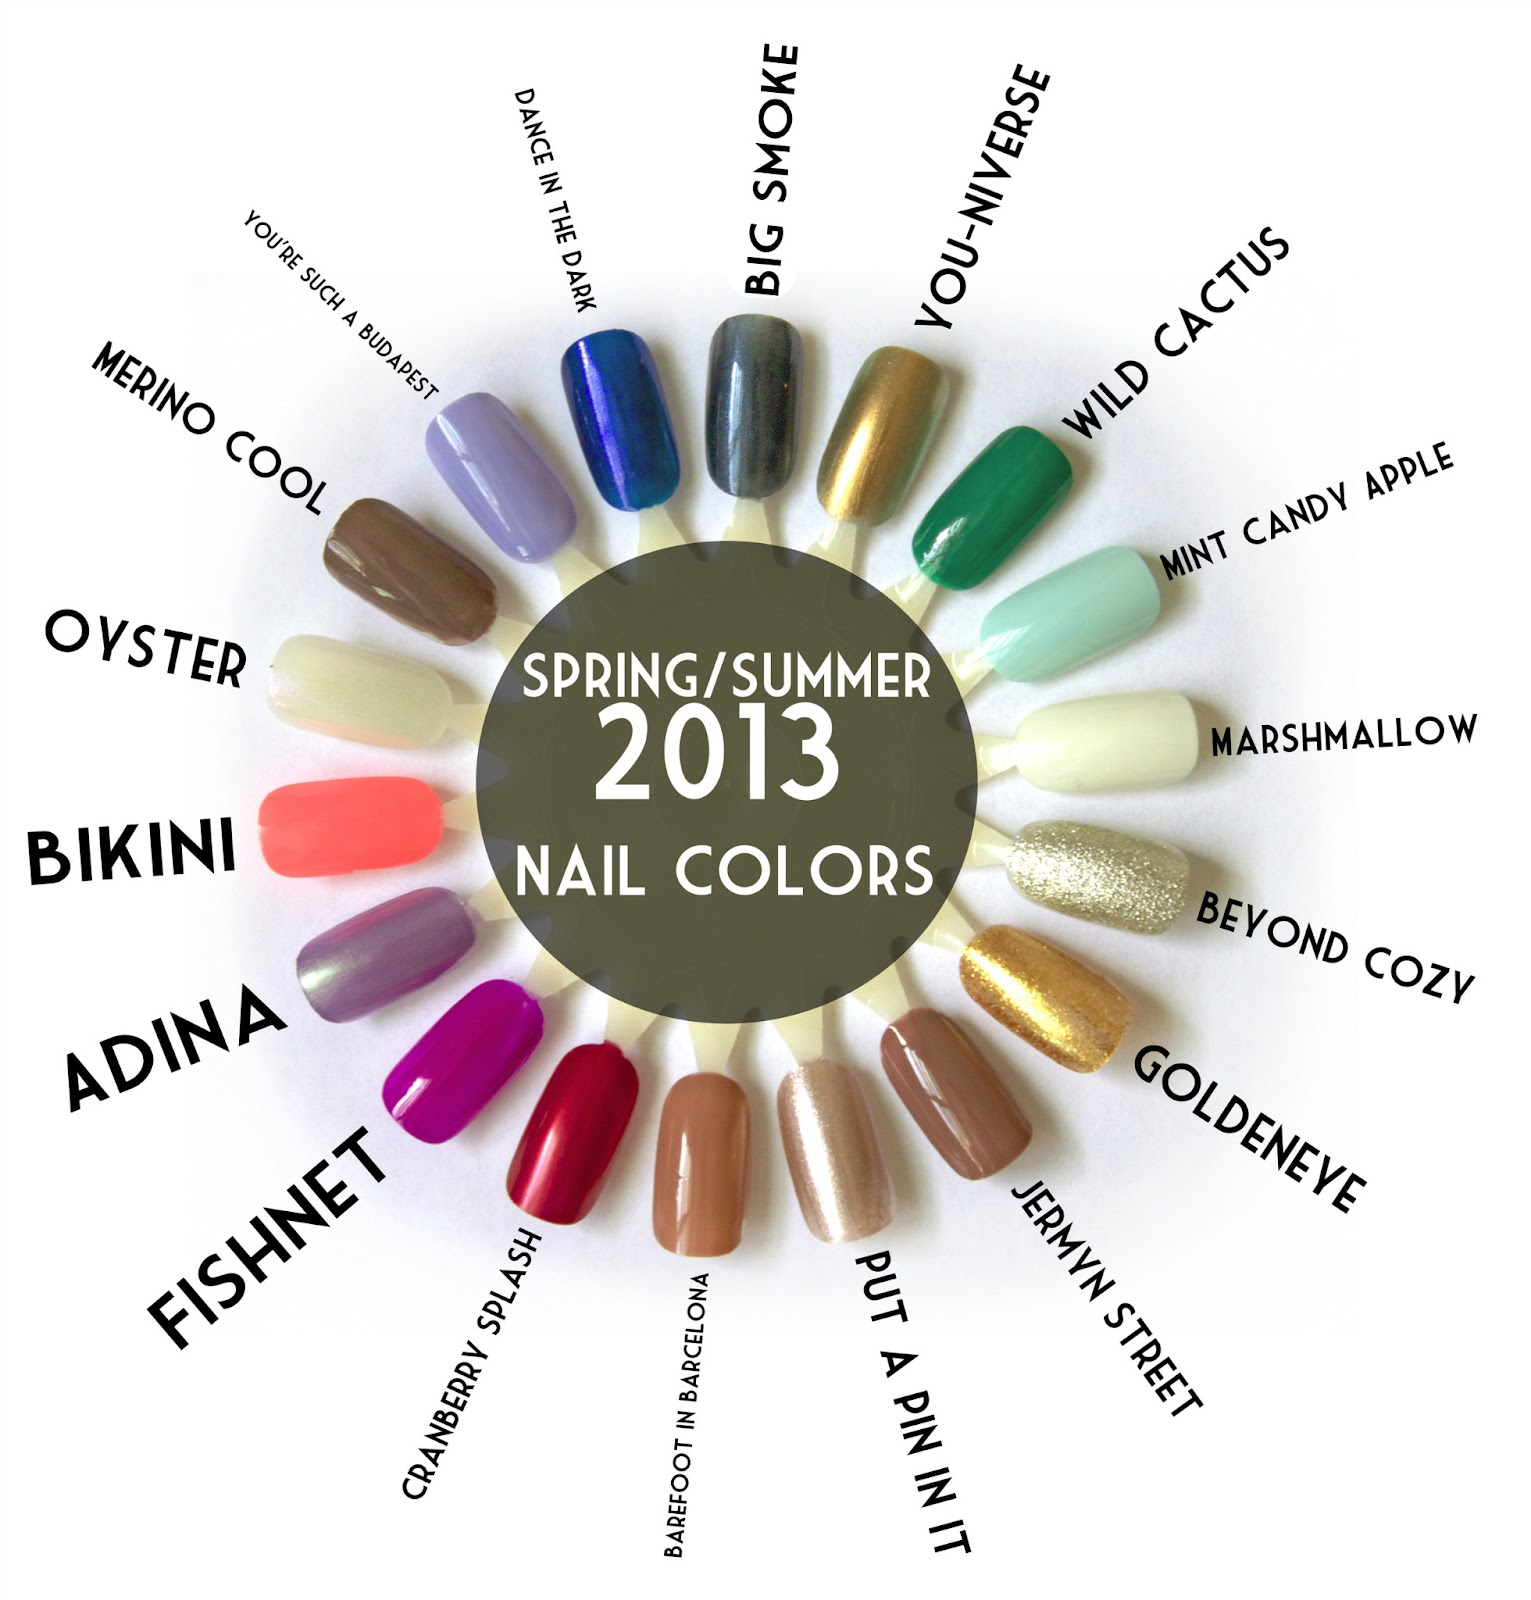 spring summer 2013 nail inspiration with swatches and nail art  [ 1531 x 1600 Pixel ]